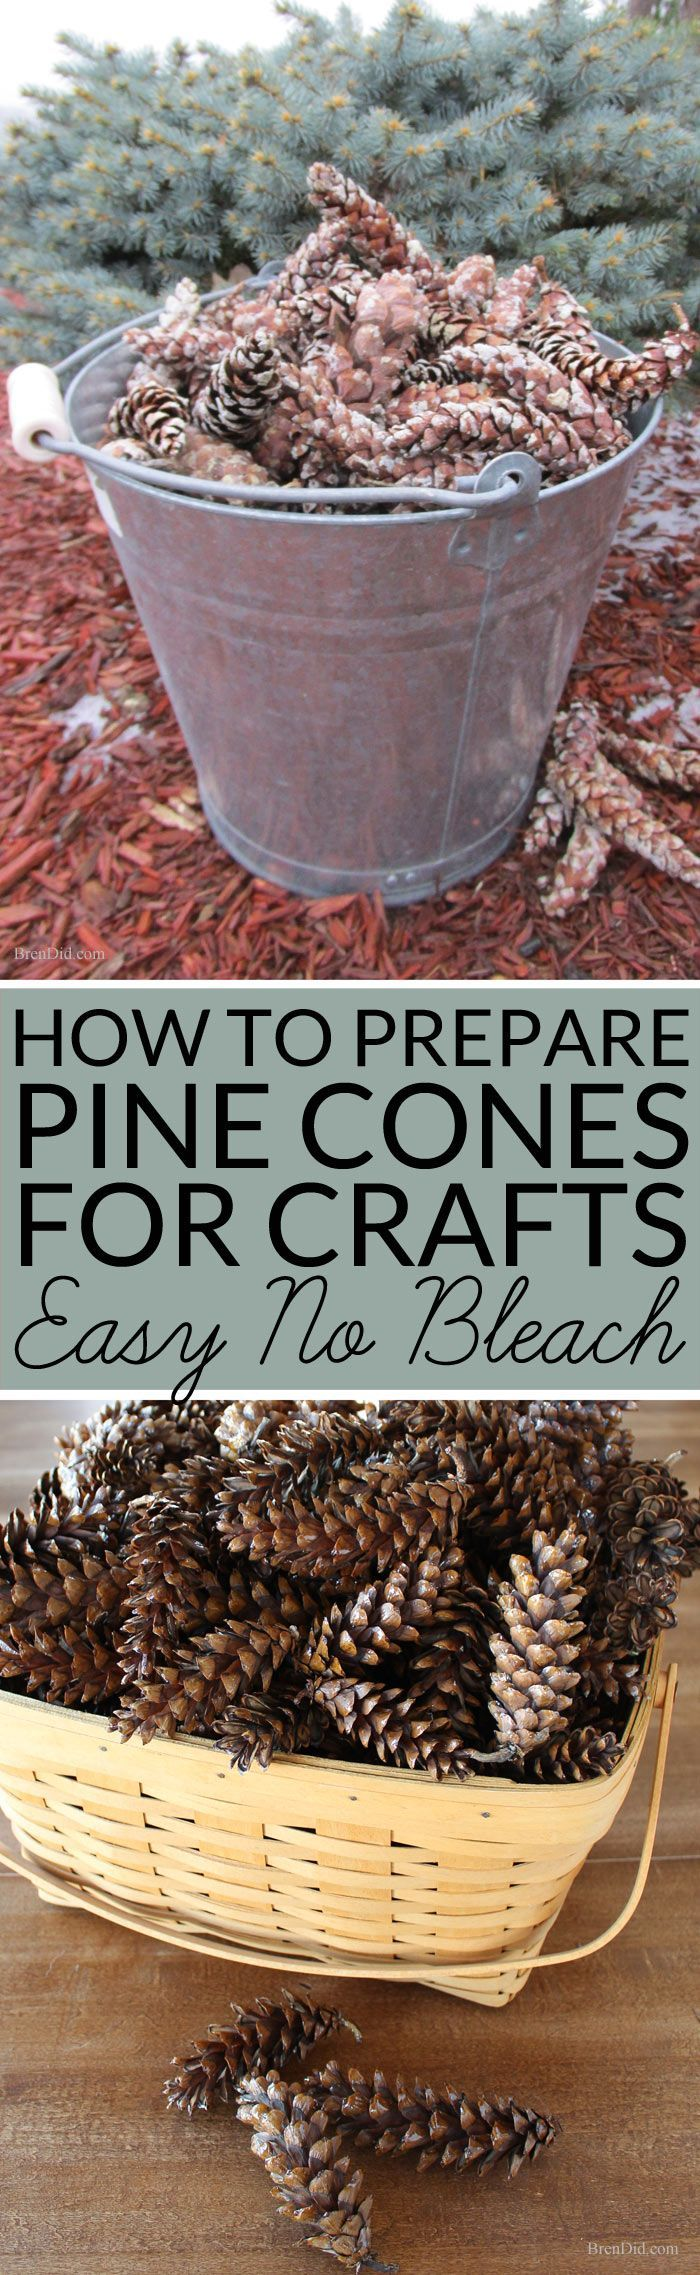 how to prepare pine cones for crafts pine cone pine and outdoors